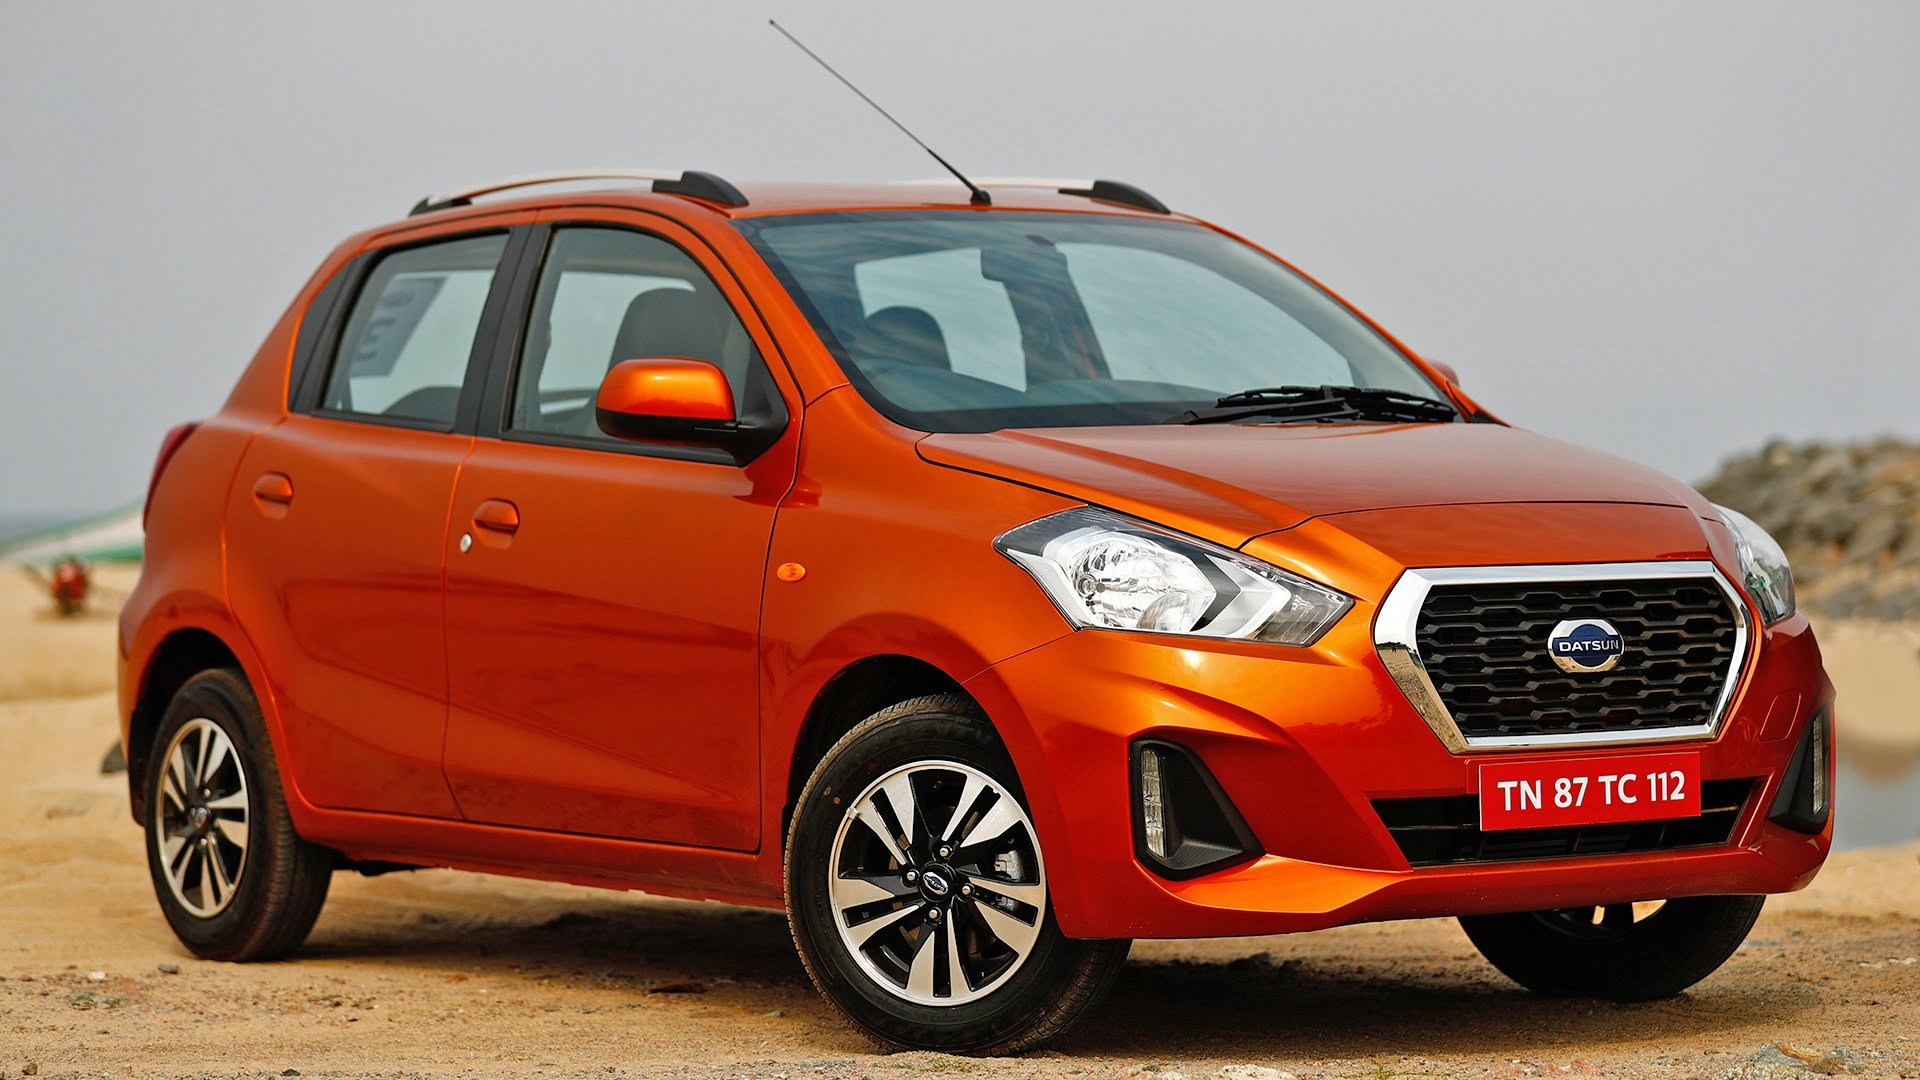 New Datsun Go 2018 Price Mileage Reviews Specification On This Month